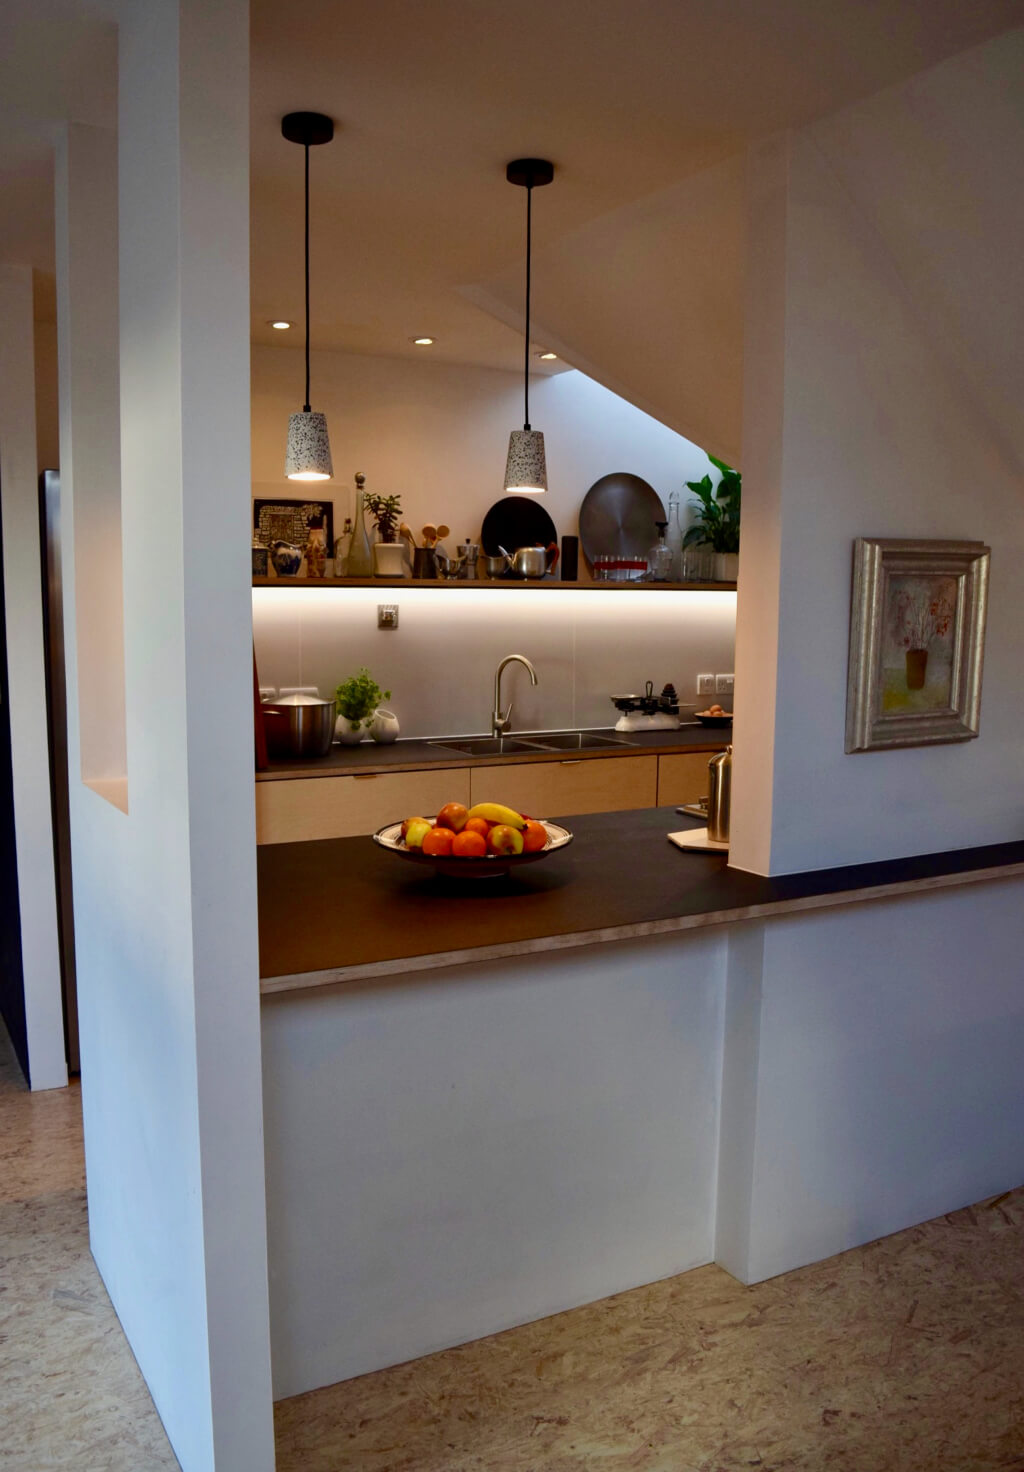 King's Construction | Apartment Renovation | Kitchen from Living Room | London SE16